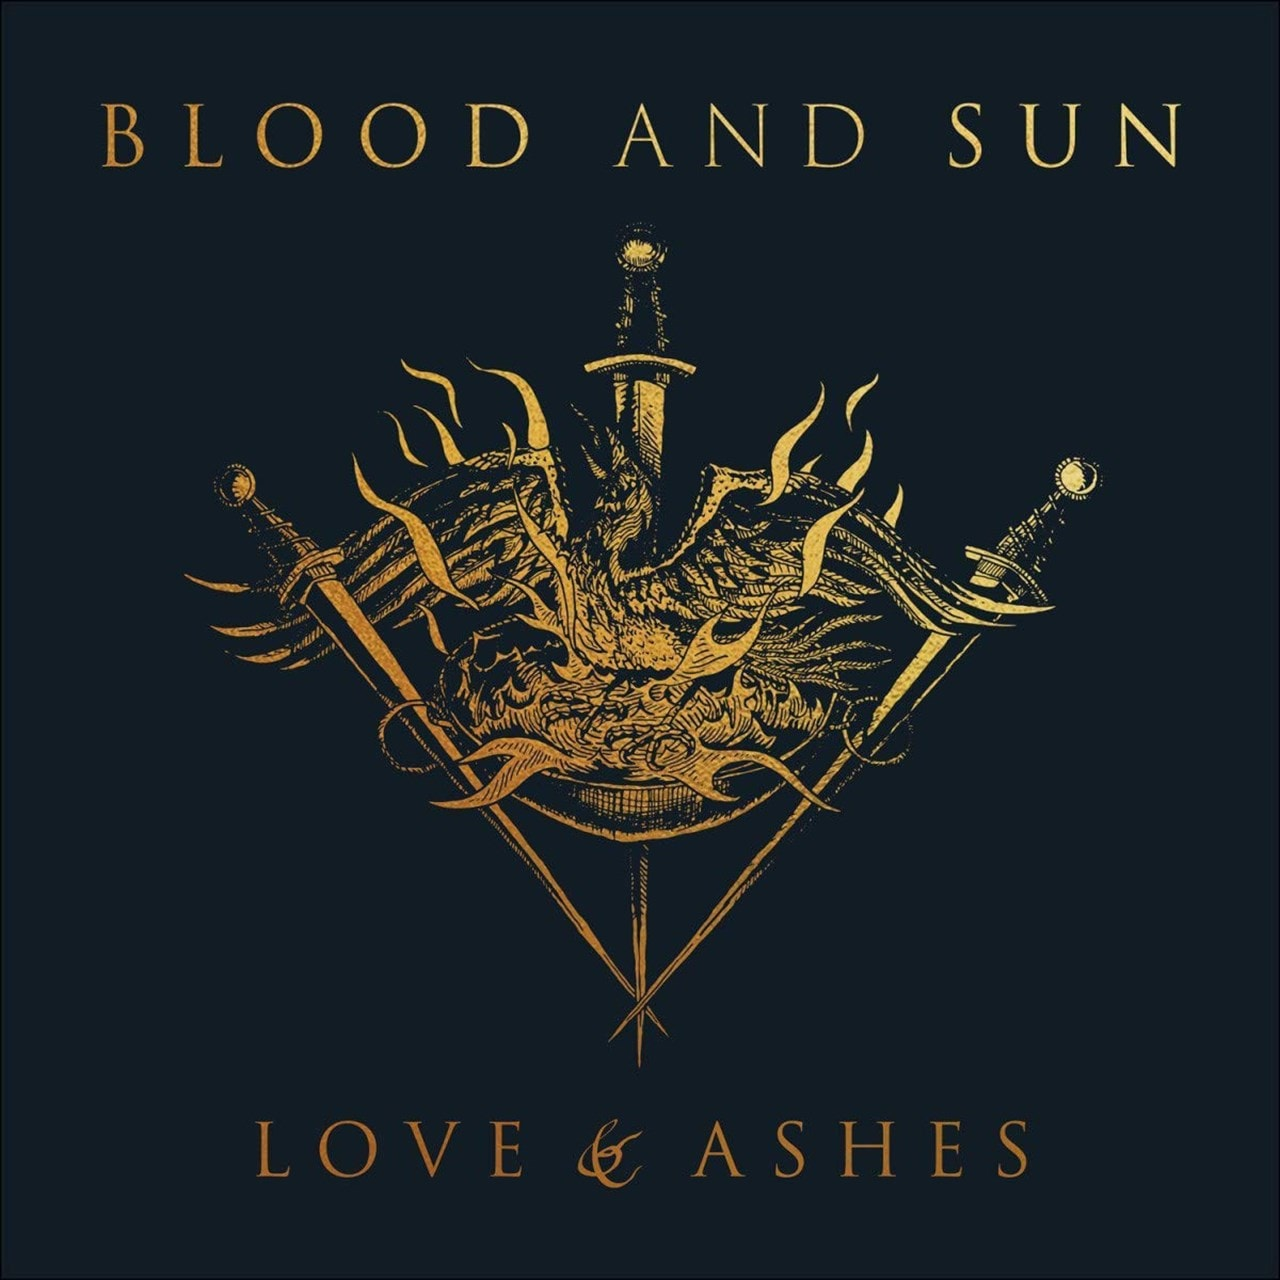 Love & Ashes - 1